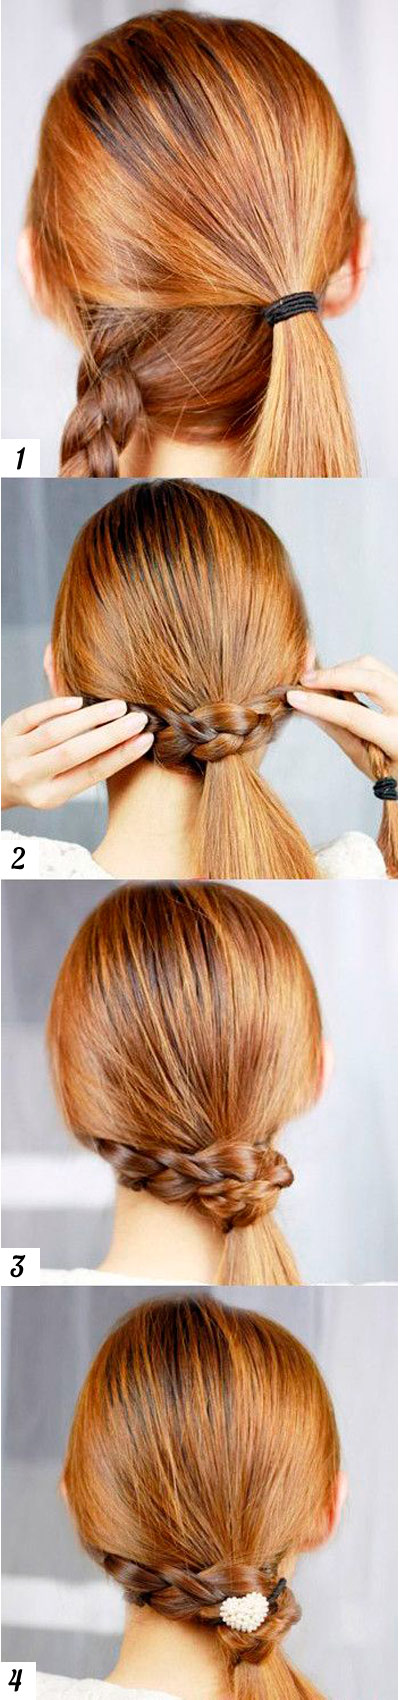 hairstyle to school Tail with a scythe